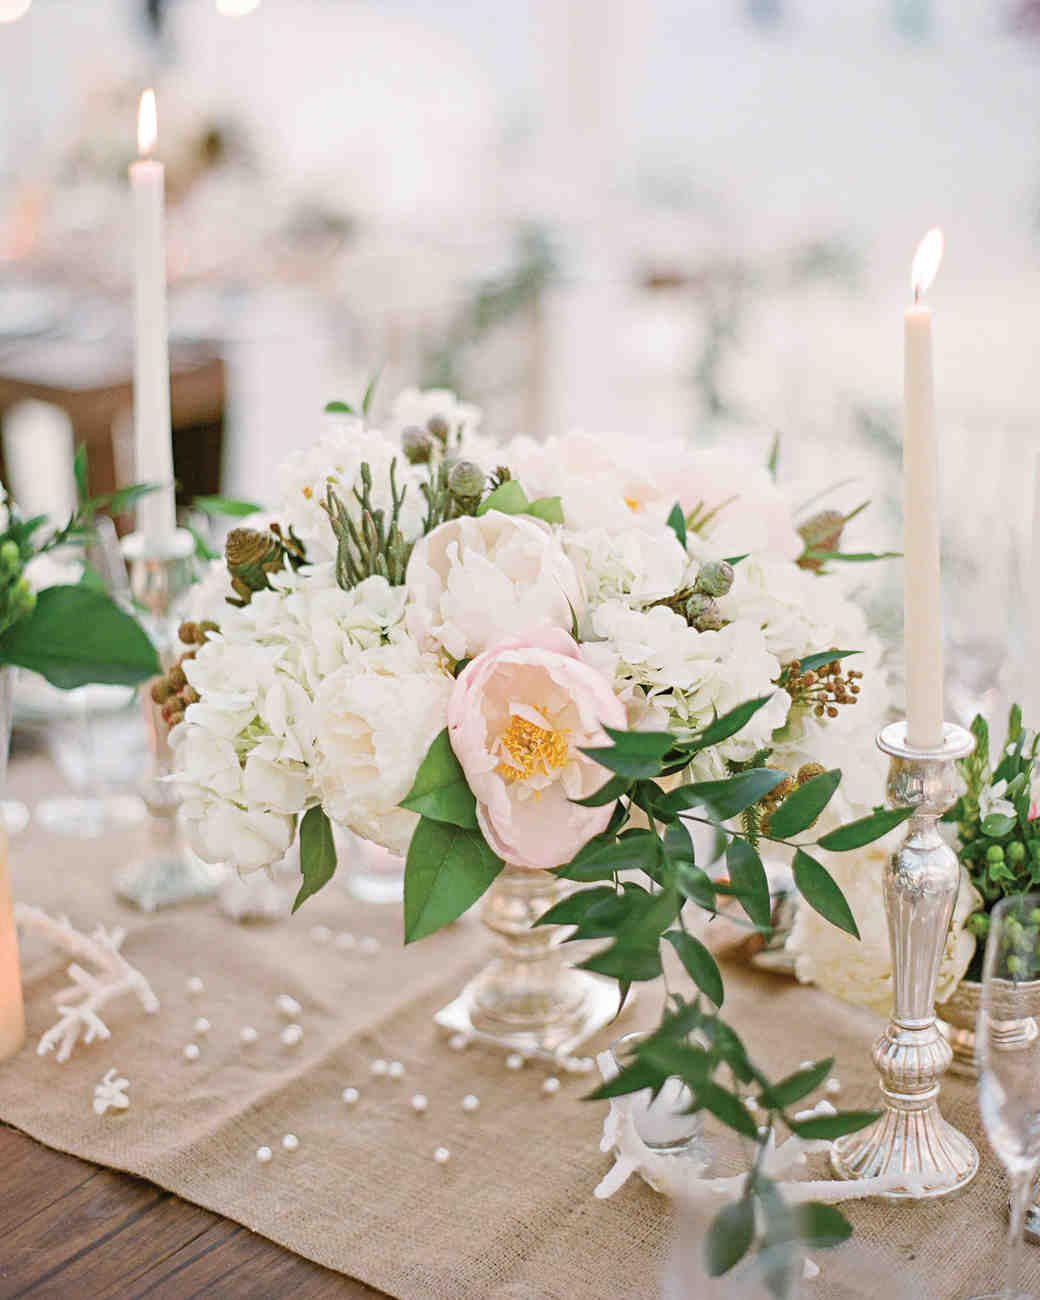 22 Totally Chic Vintage Centerpieces | Martha Stewart Weddings